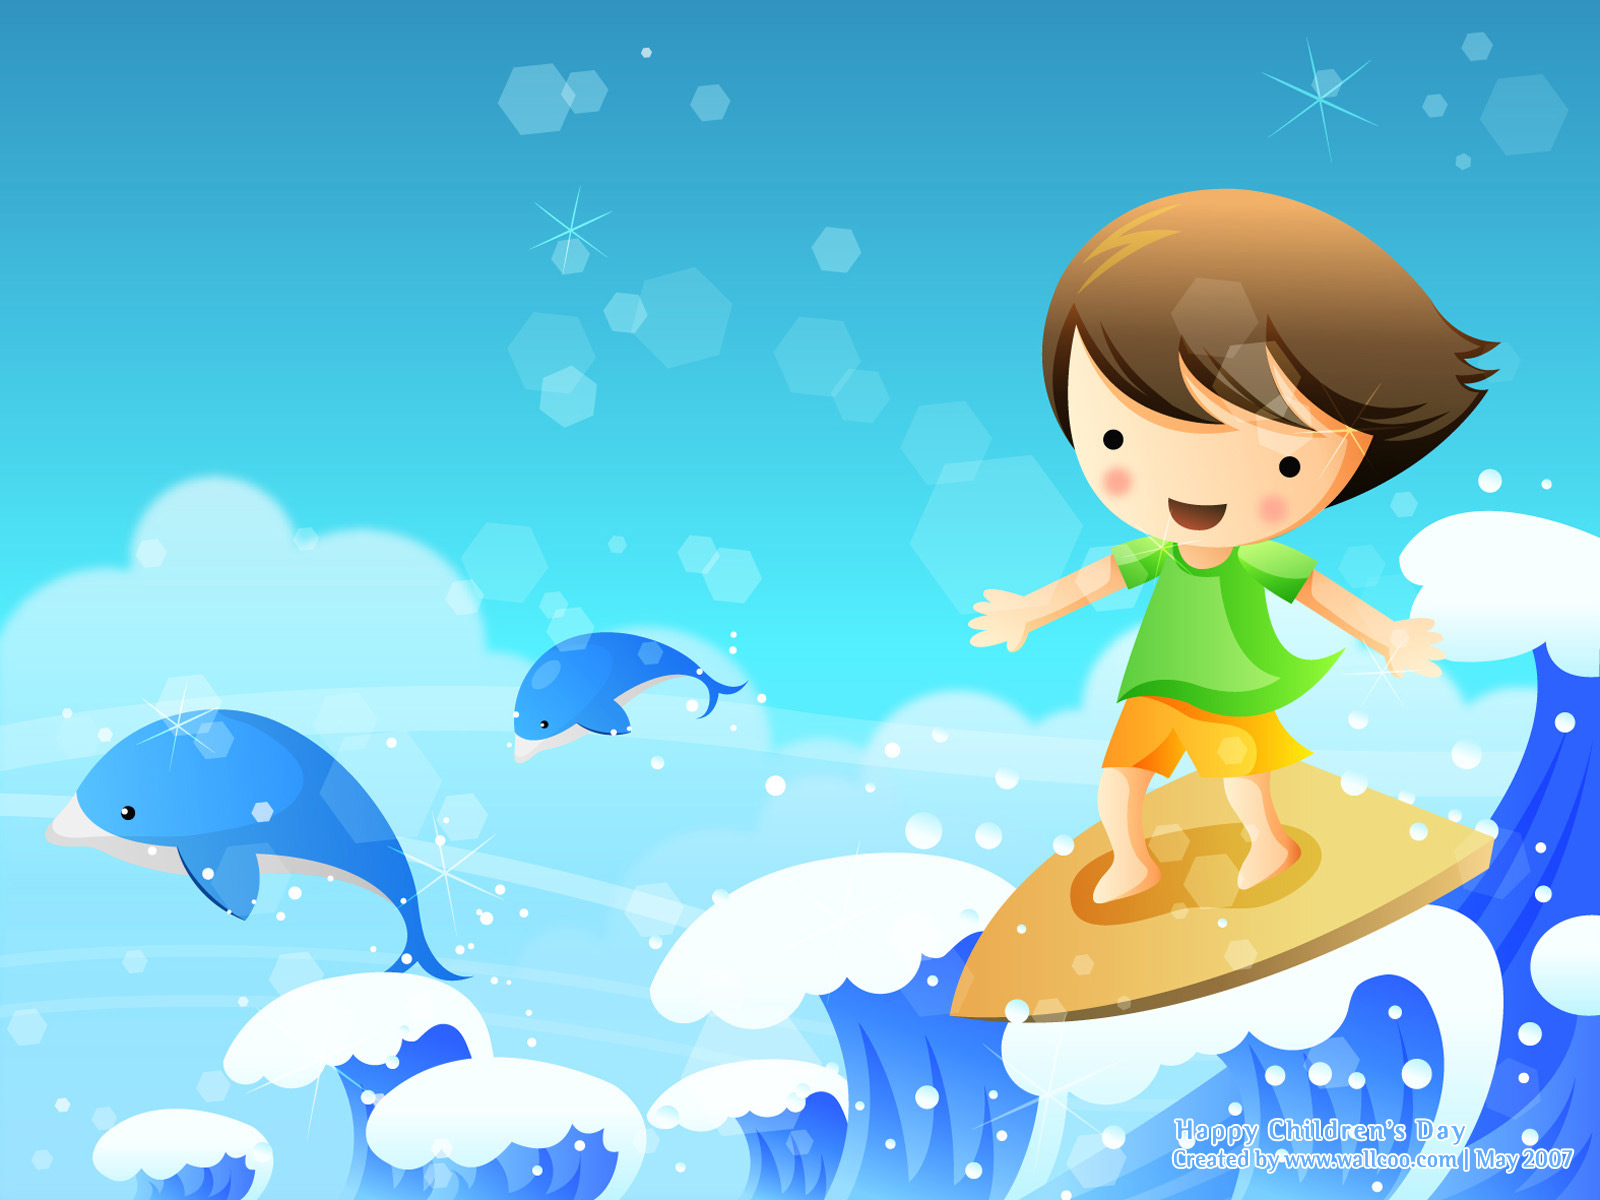 Colourful Illustrations for Childrens Day 16001200 NO24 Wallpaper 1600x1200